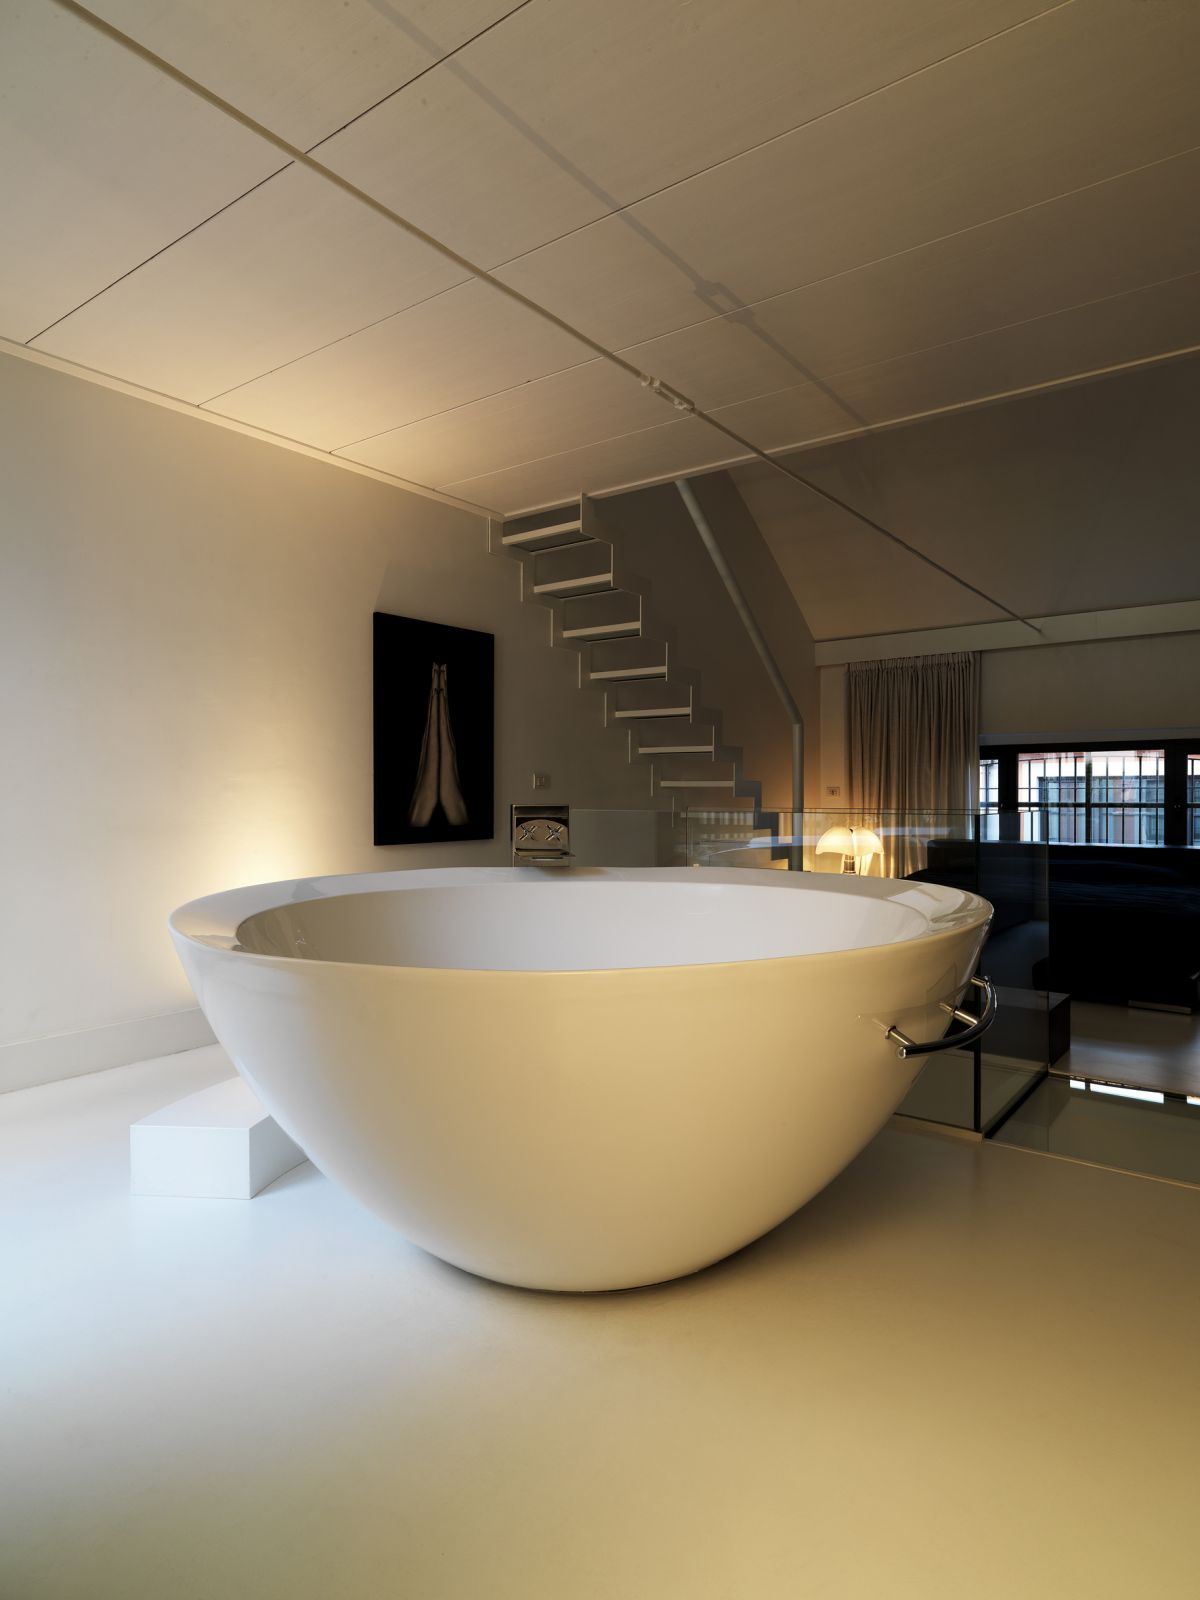 brilliant-minimalist-design-of-modern-minimalist-bathtub-design-bowl-shape-for-home-design